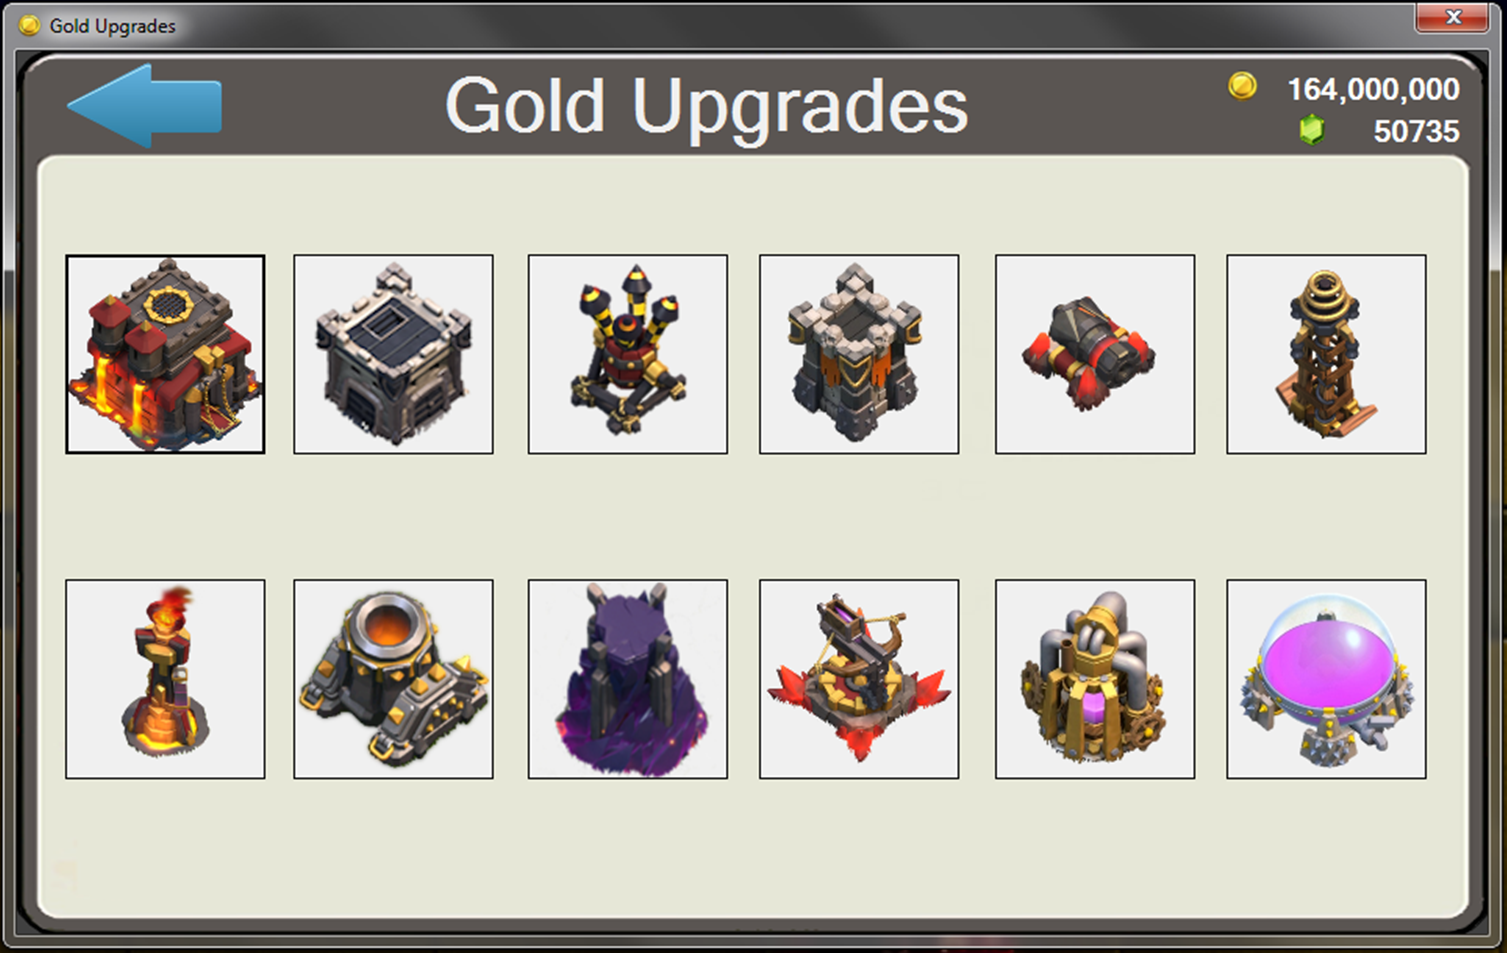 Images for Clash Of Clans List Of Upgrades